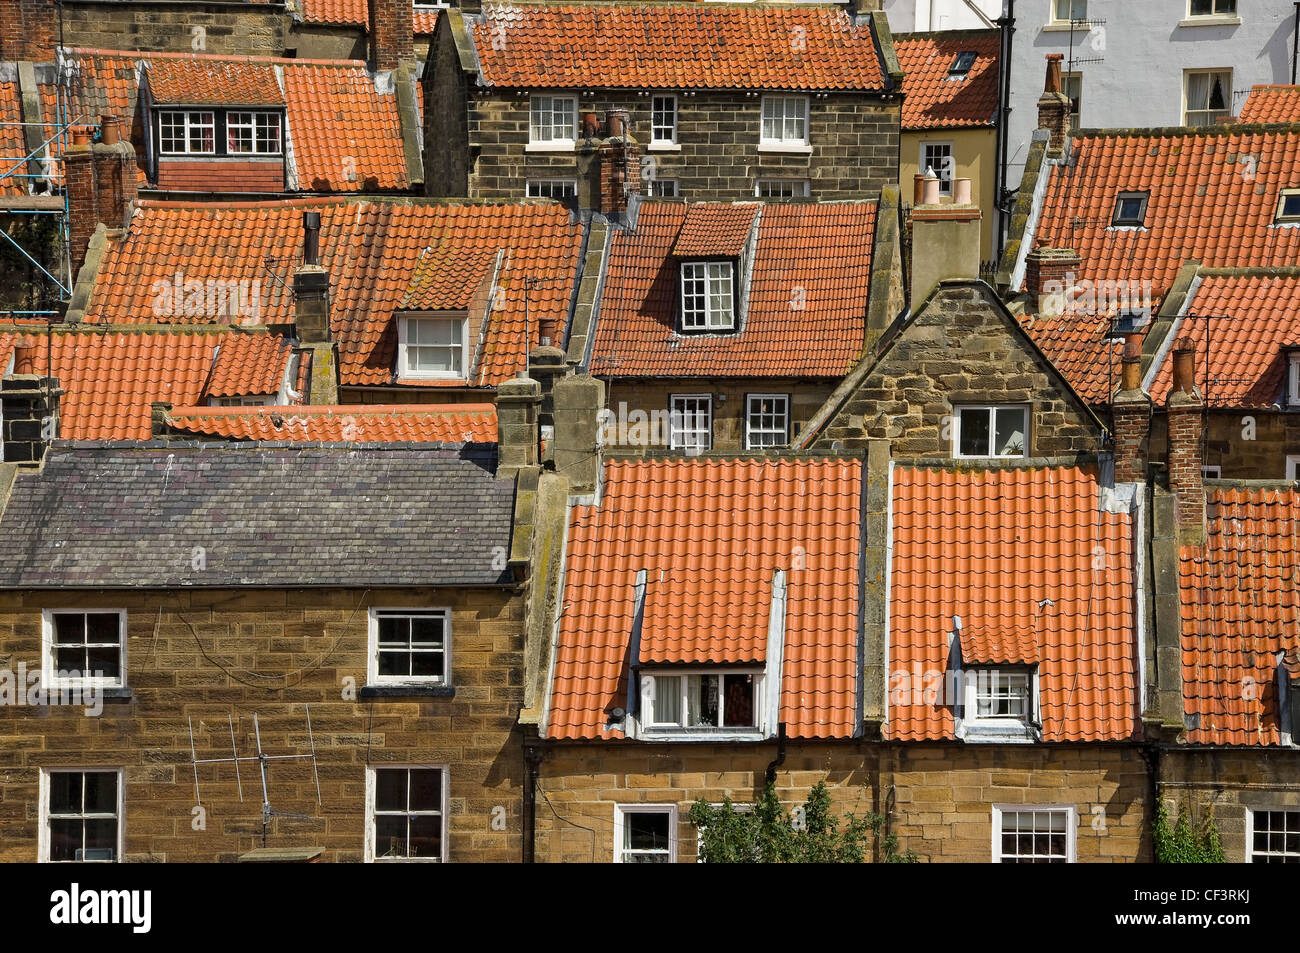 Looking over the rooftops in Robin Hoods Bay, reportedly the busiest smuggling community on the Yorkshire coast - Stock Image